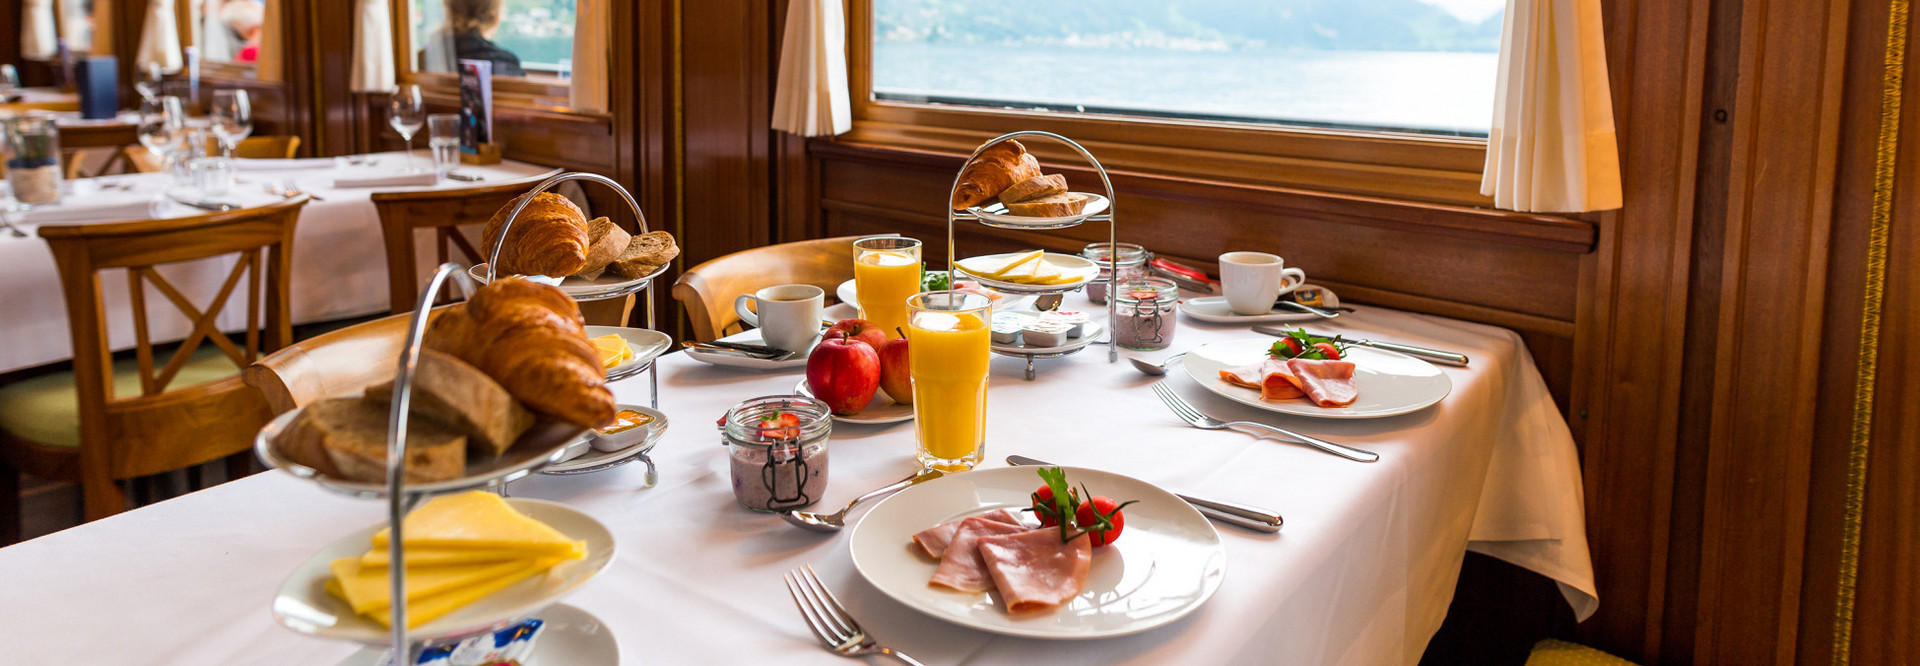 Fresh bread and croissants as well as delicious muesli are served on the breakfast cruise.